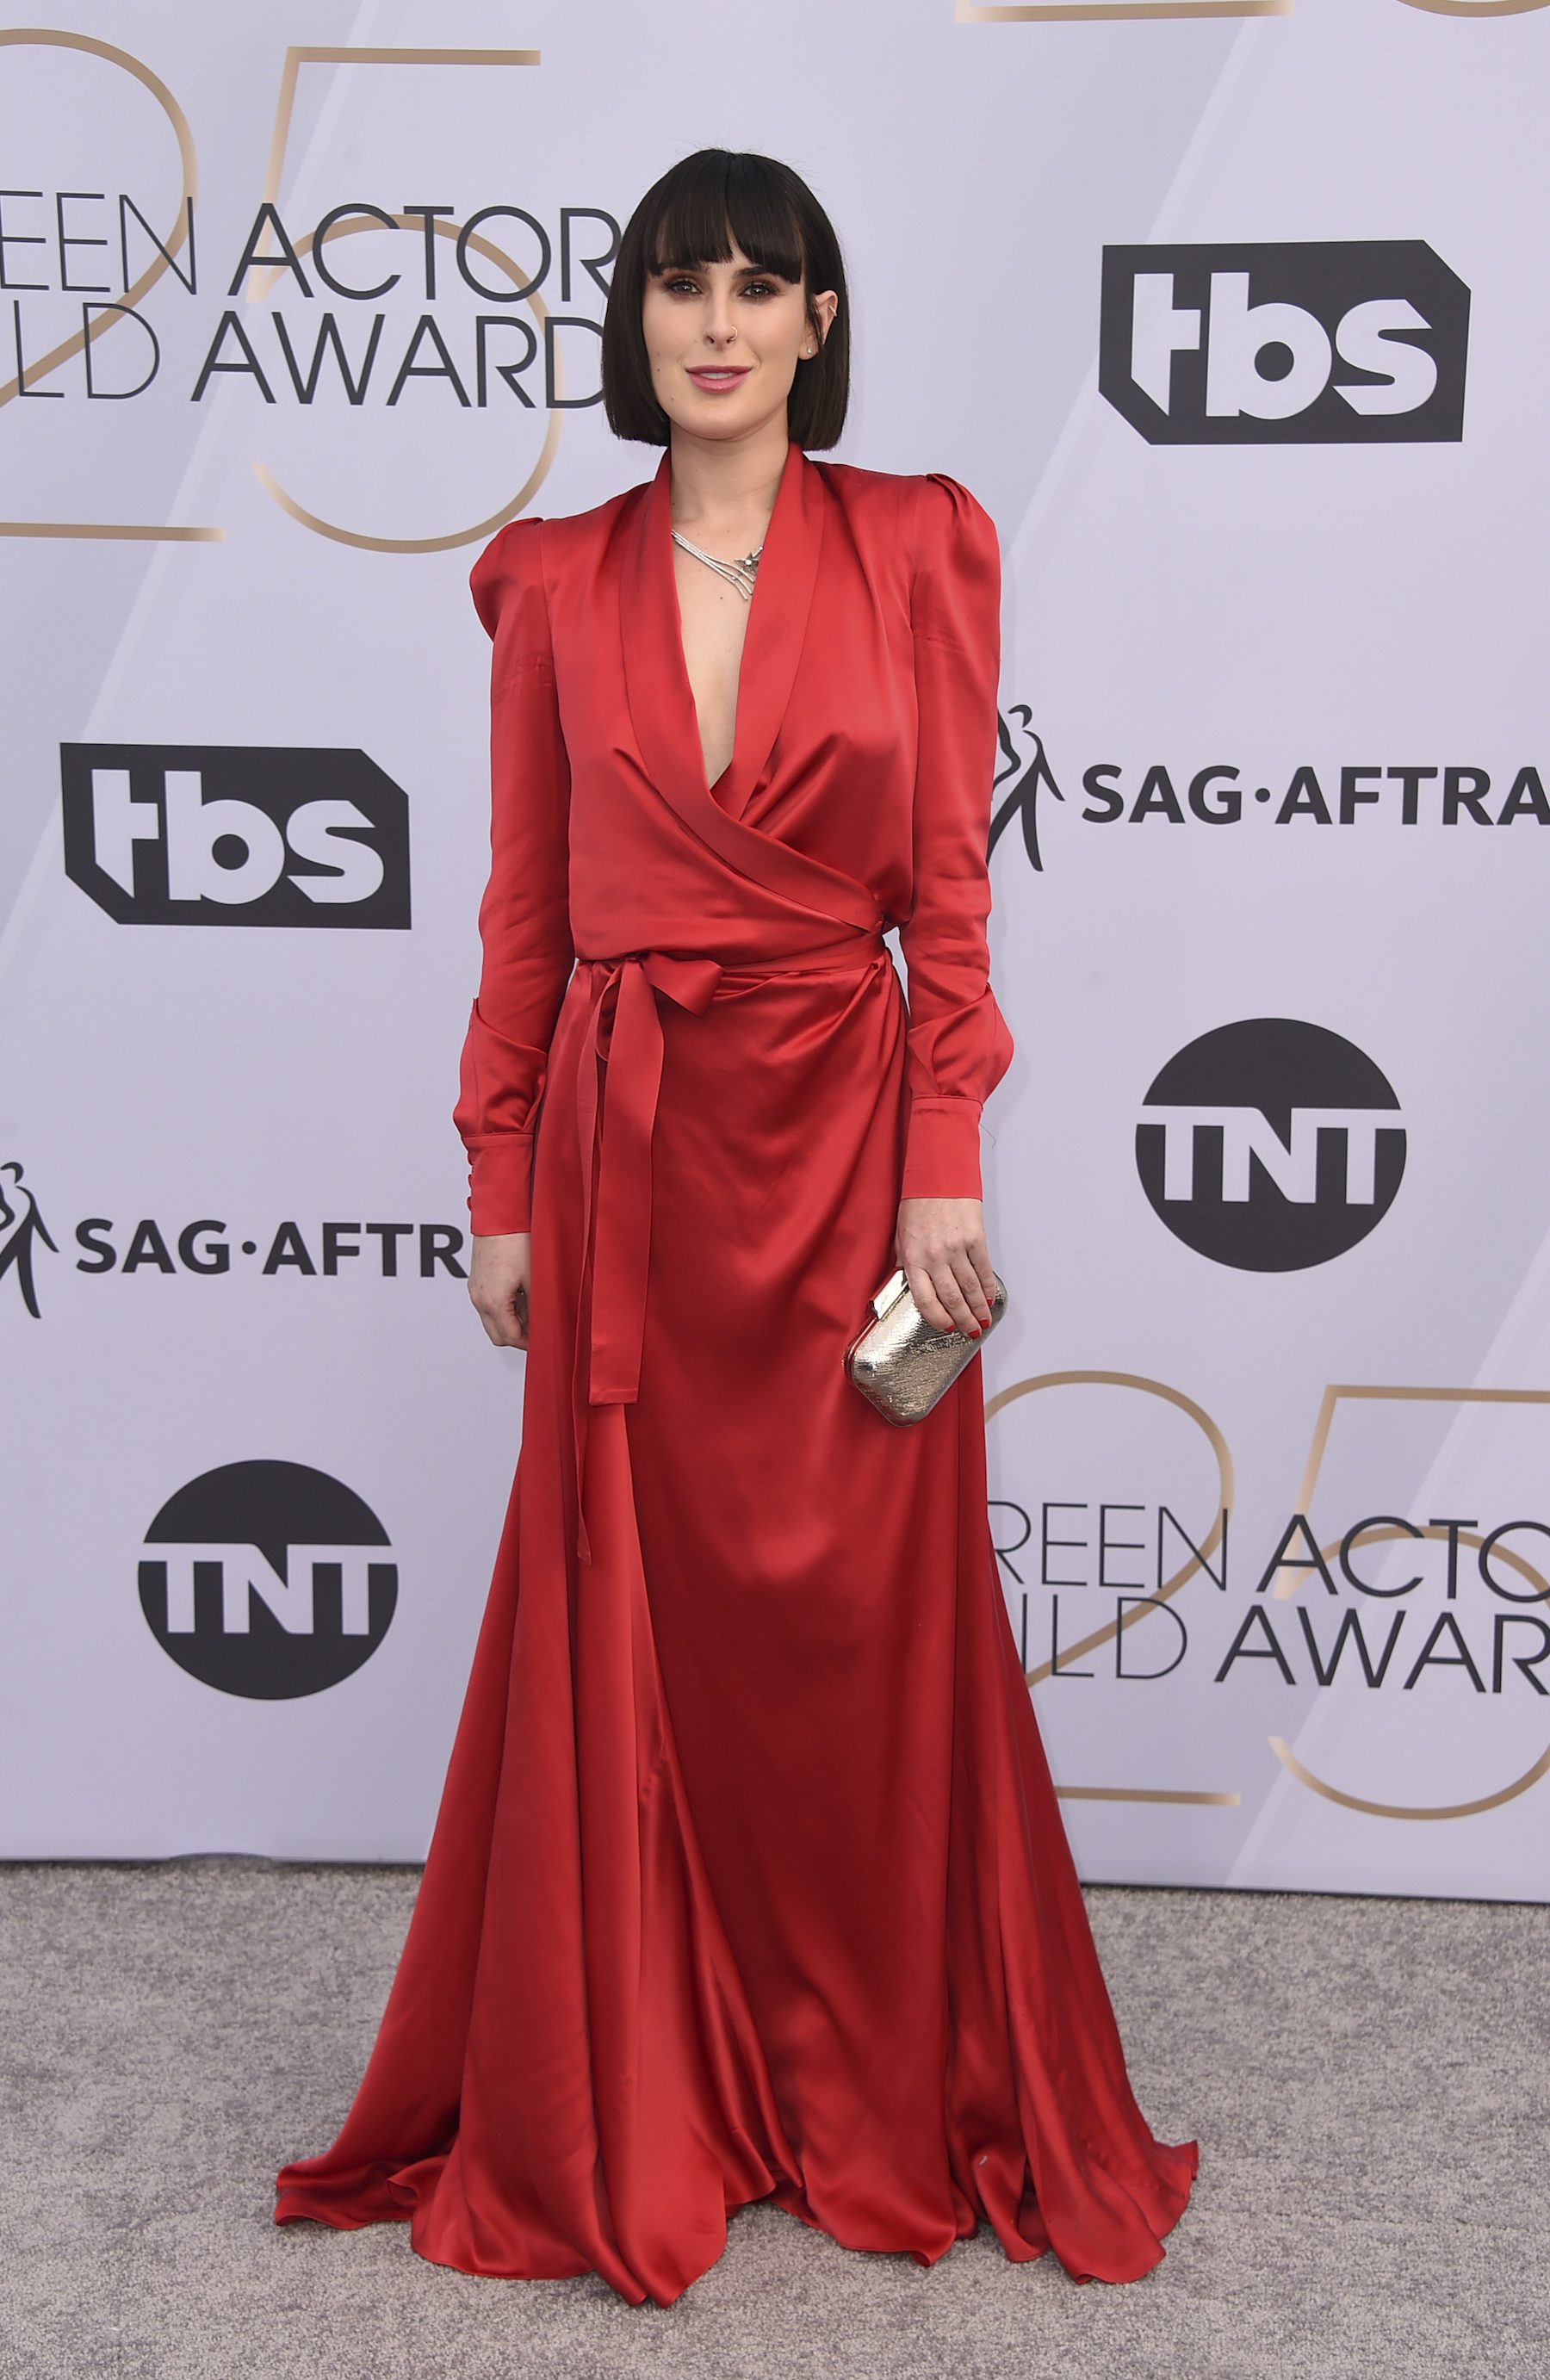 "<div class=""meta image-caption""><div class=""origin-logo origin-image ap""><span>AP</span></div><span class=""caption-text"">Rumer Willis arrives at the 25th annual Screen Actors Guild Awards at the Shrine Auditorium & Expo Hall on Sunday, Jan. 27, 2019, in Los Angeles. (Jordan Strauss/Invision/AP)</span></div>"